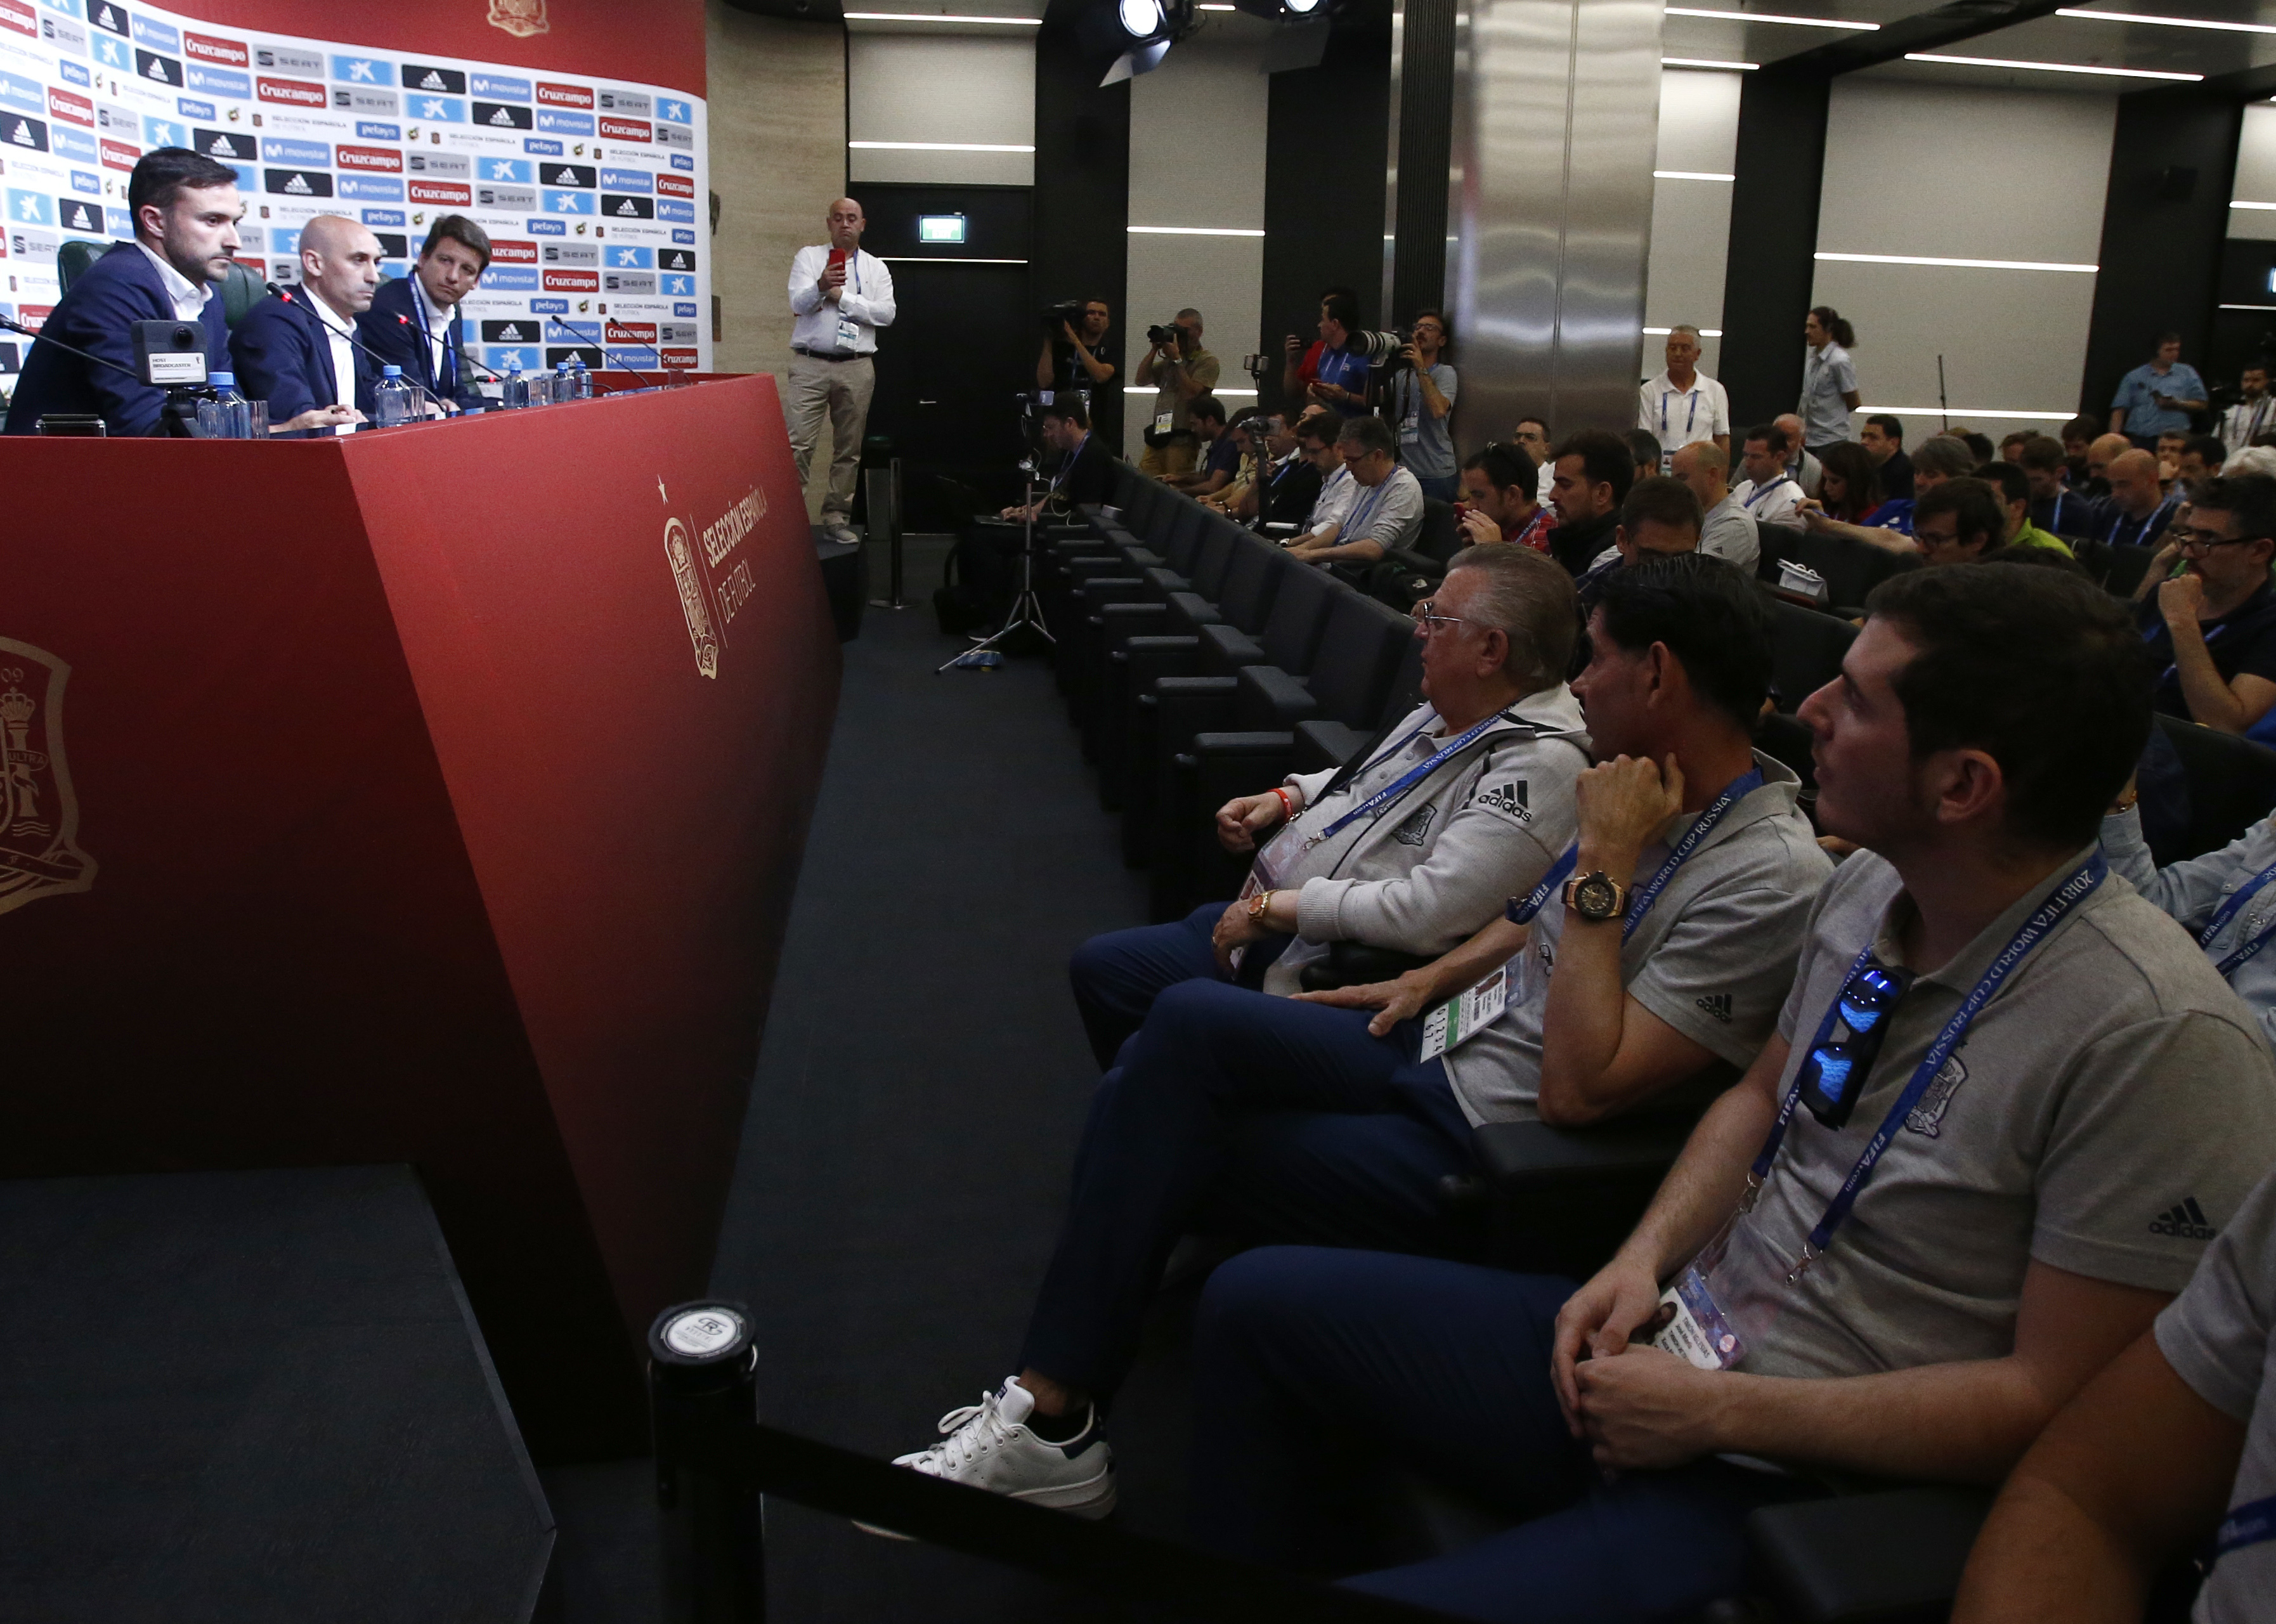 SFF president Luis Rubiales addresses the media during a press conference. Image: PA